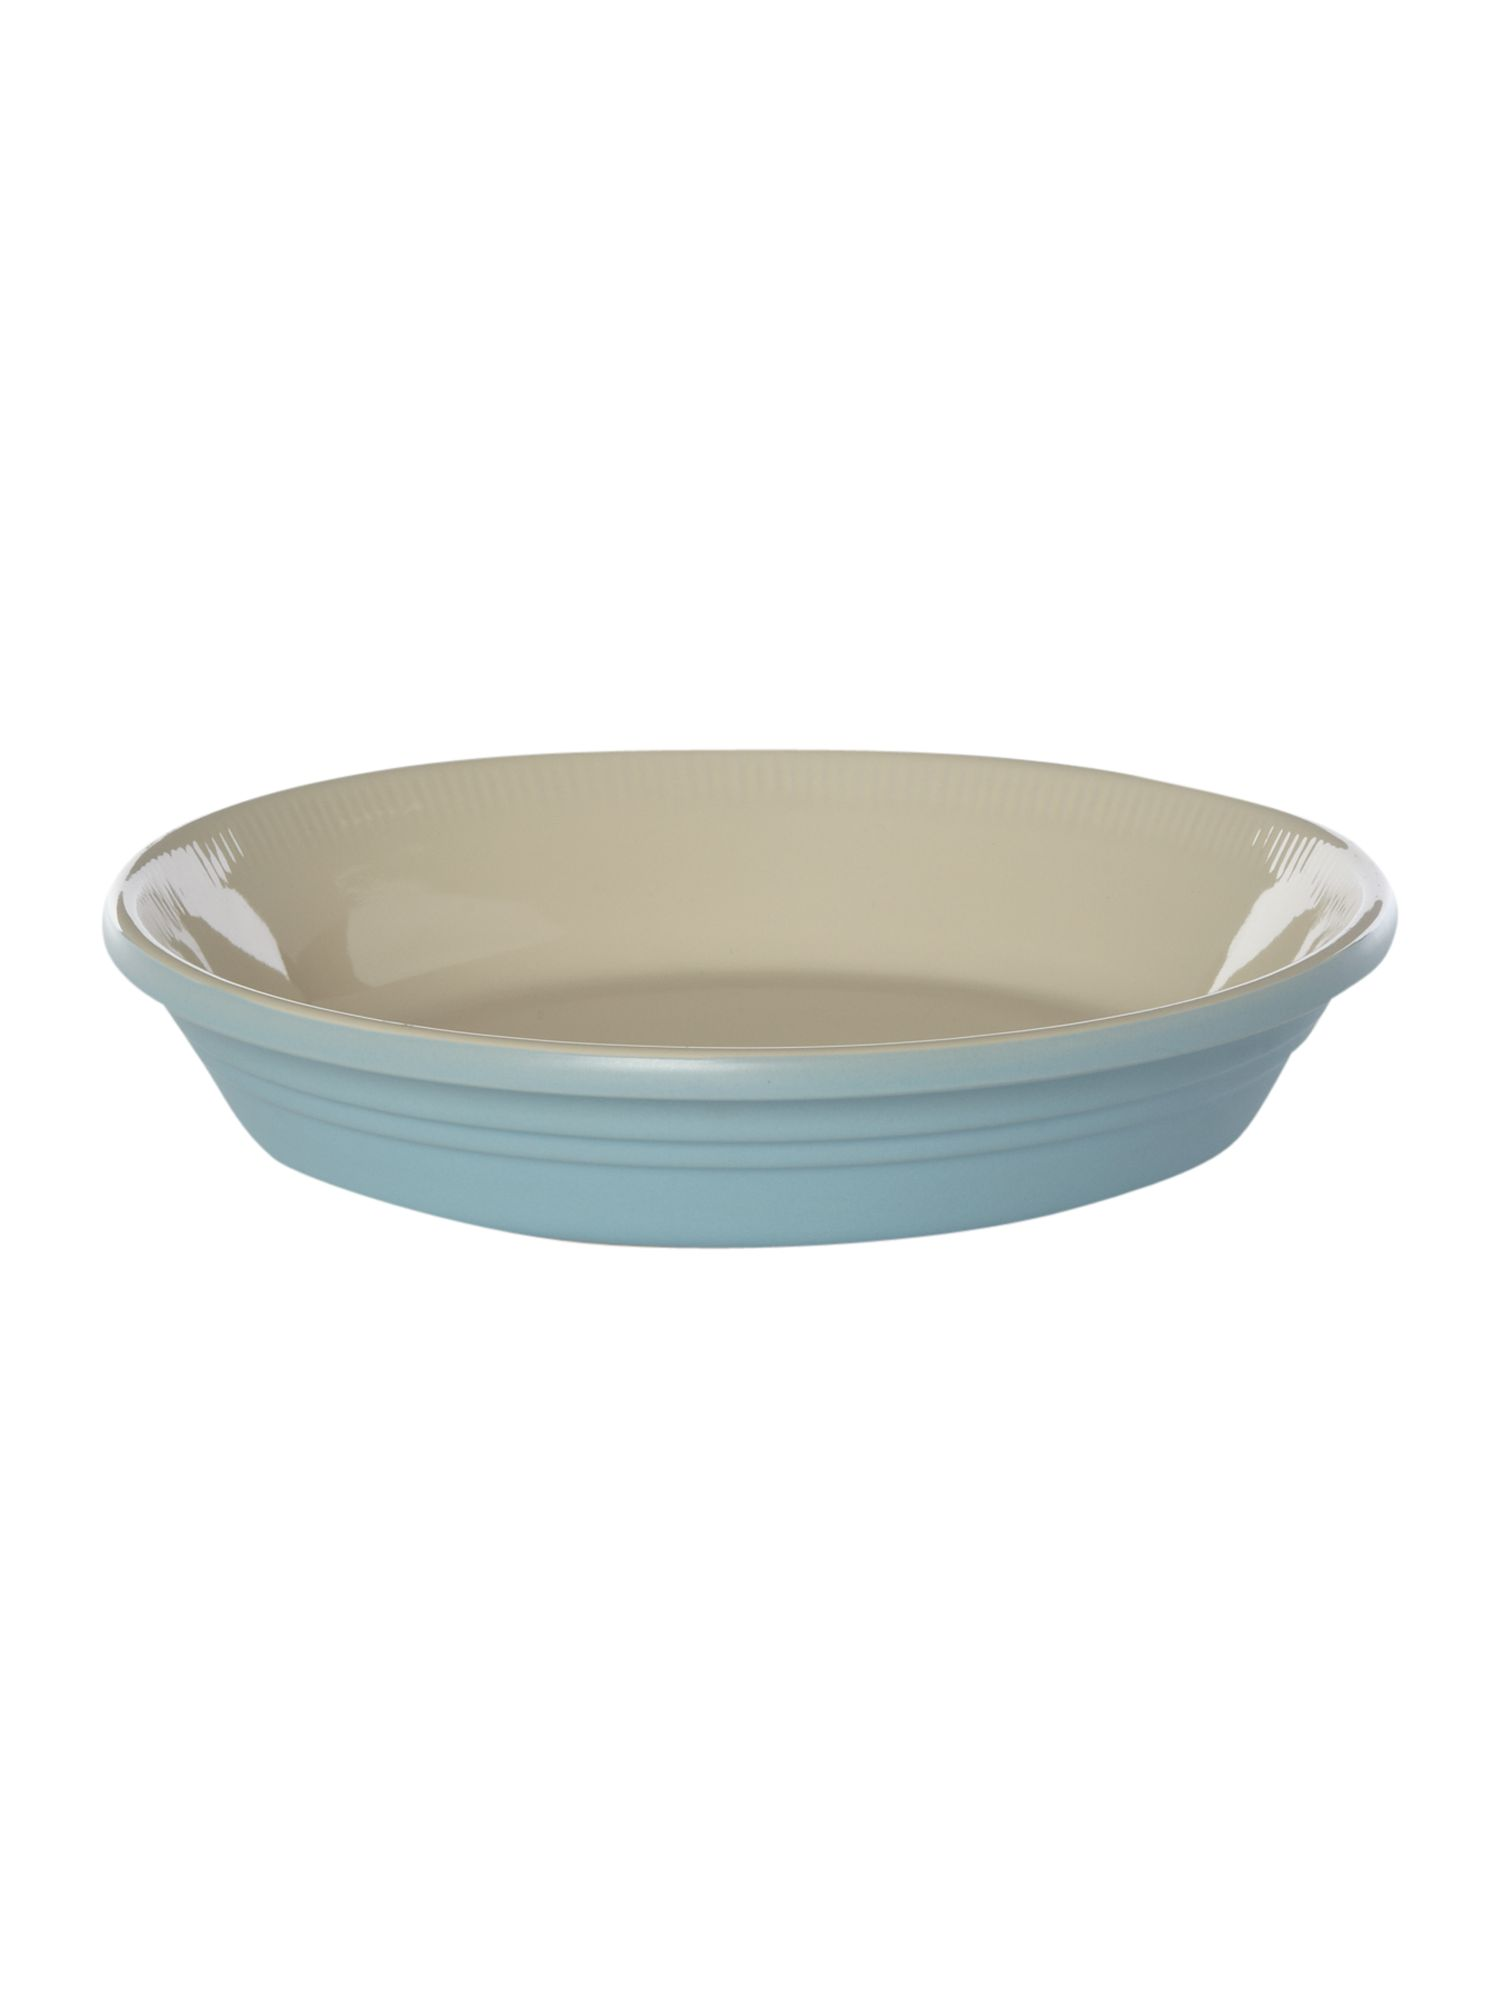 Maison pie dish 25cm, Pale blue